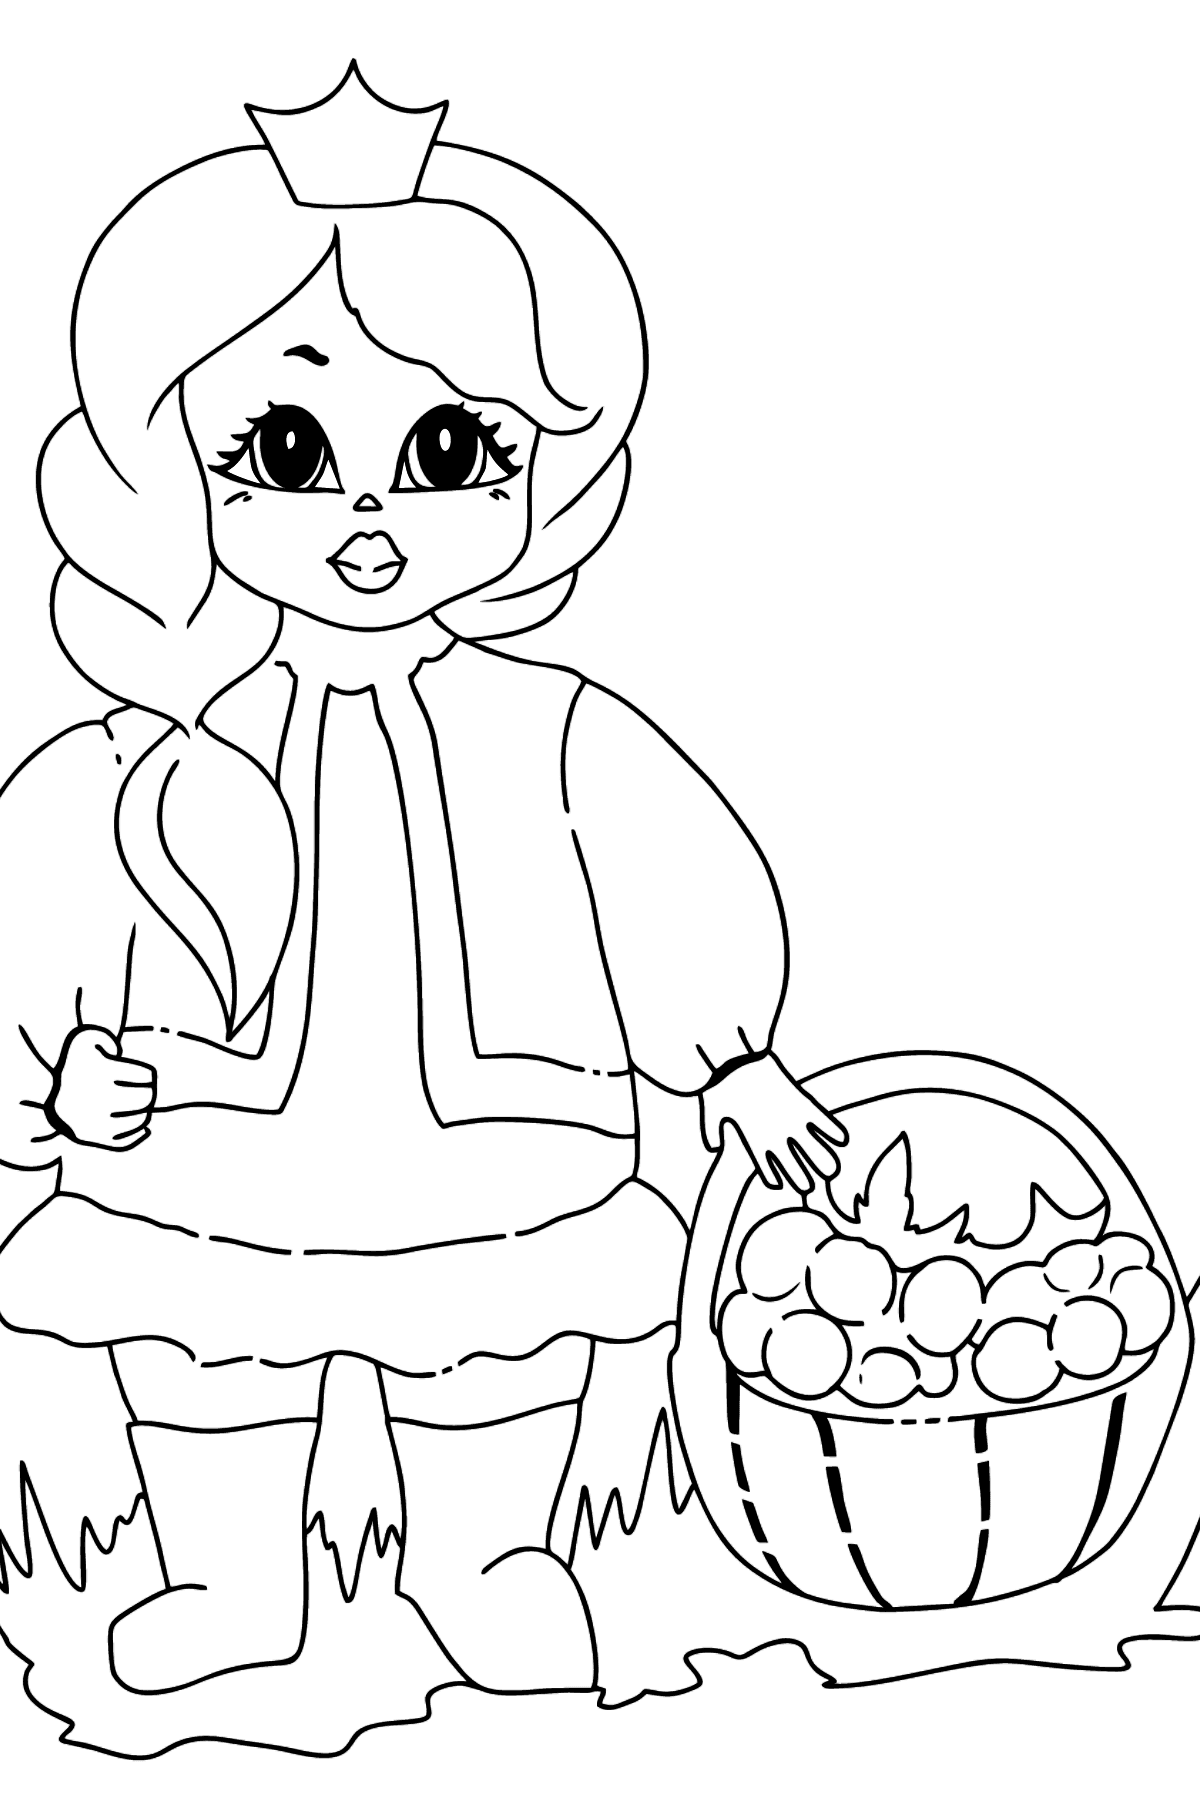 Coloring Picture - A Princess with a Basket - Coloring Pages for Kids